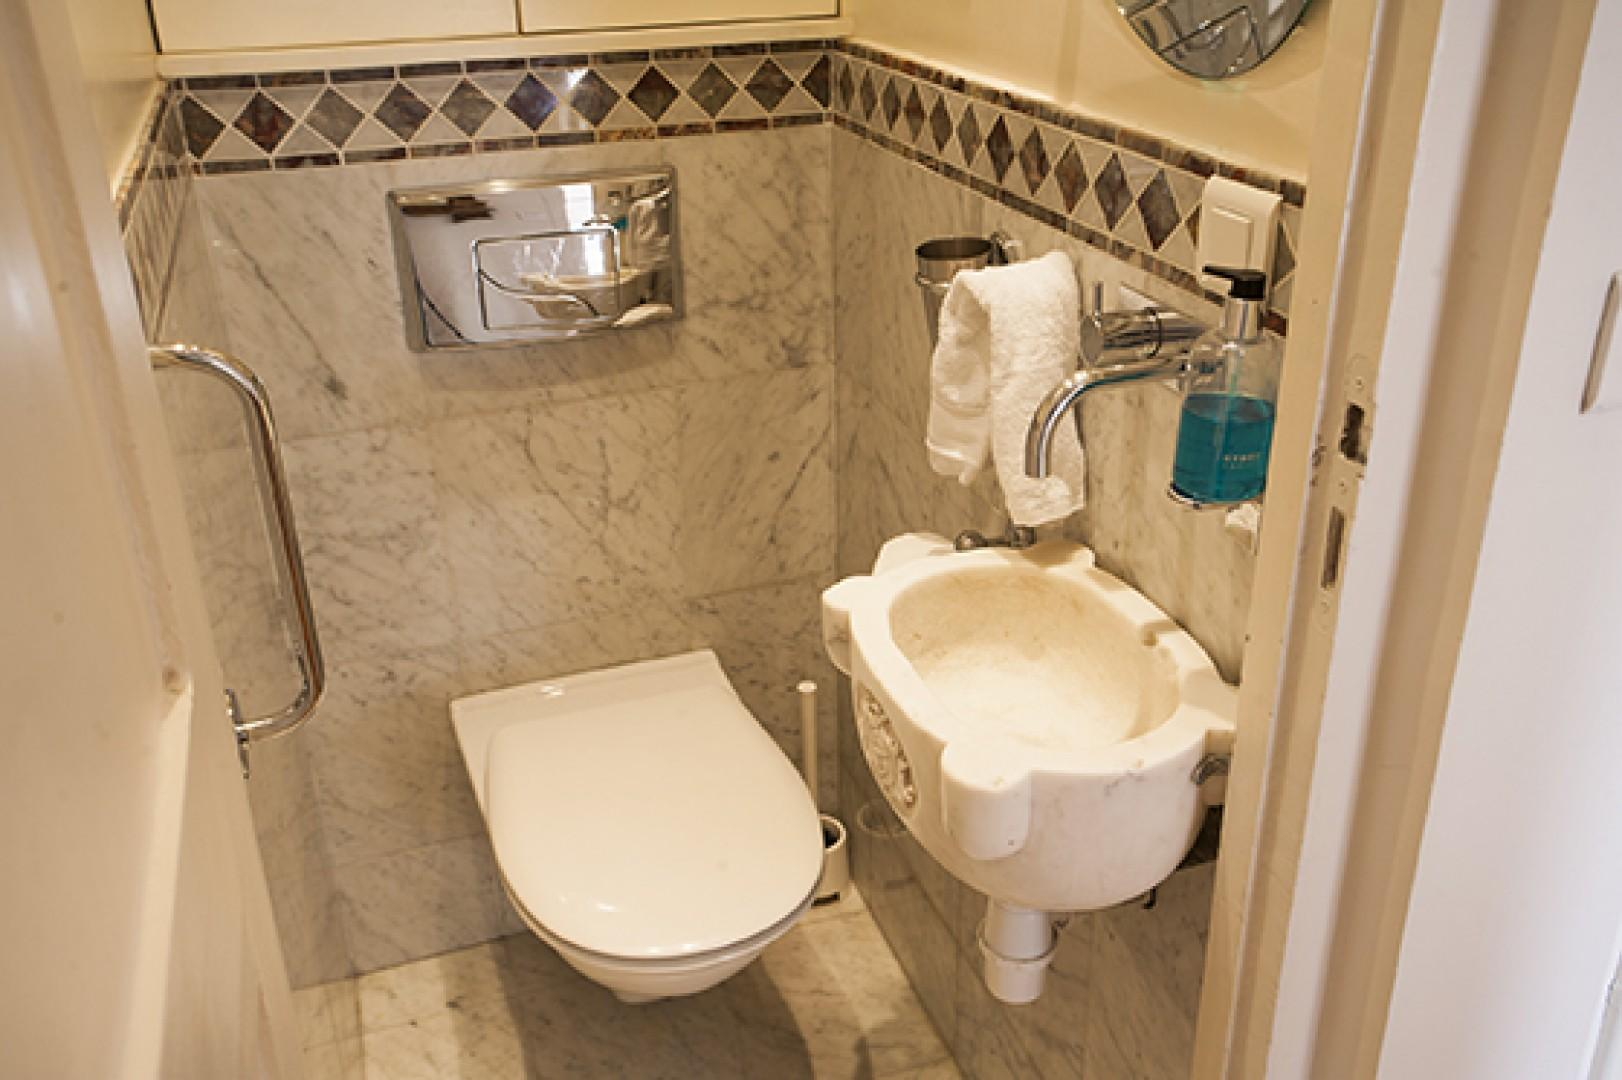 There's a half bath with toilet for extra 'getting ready' room.